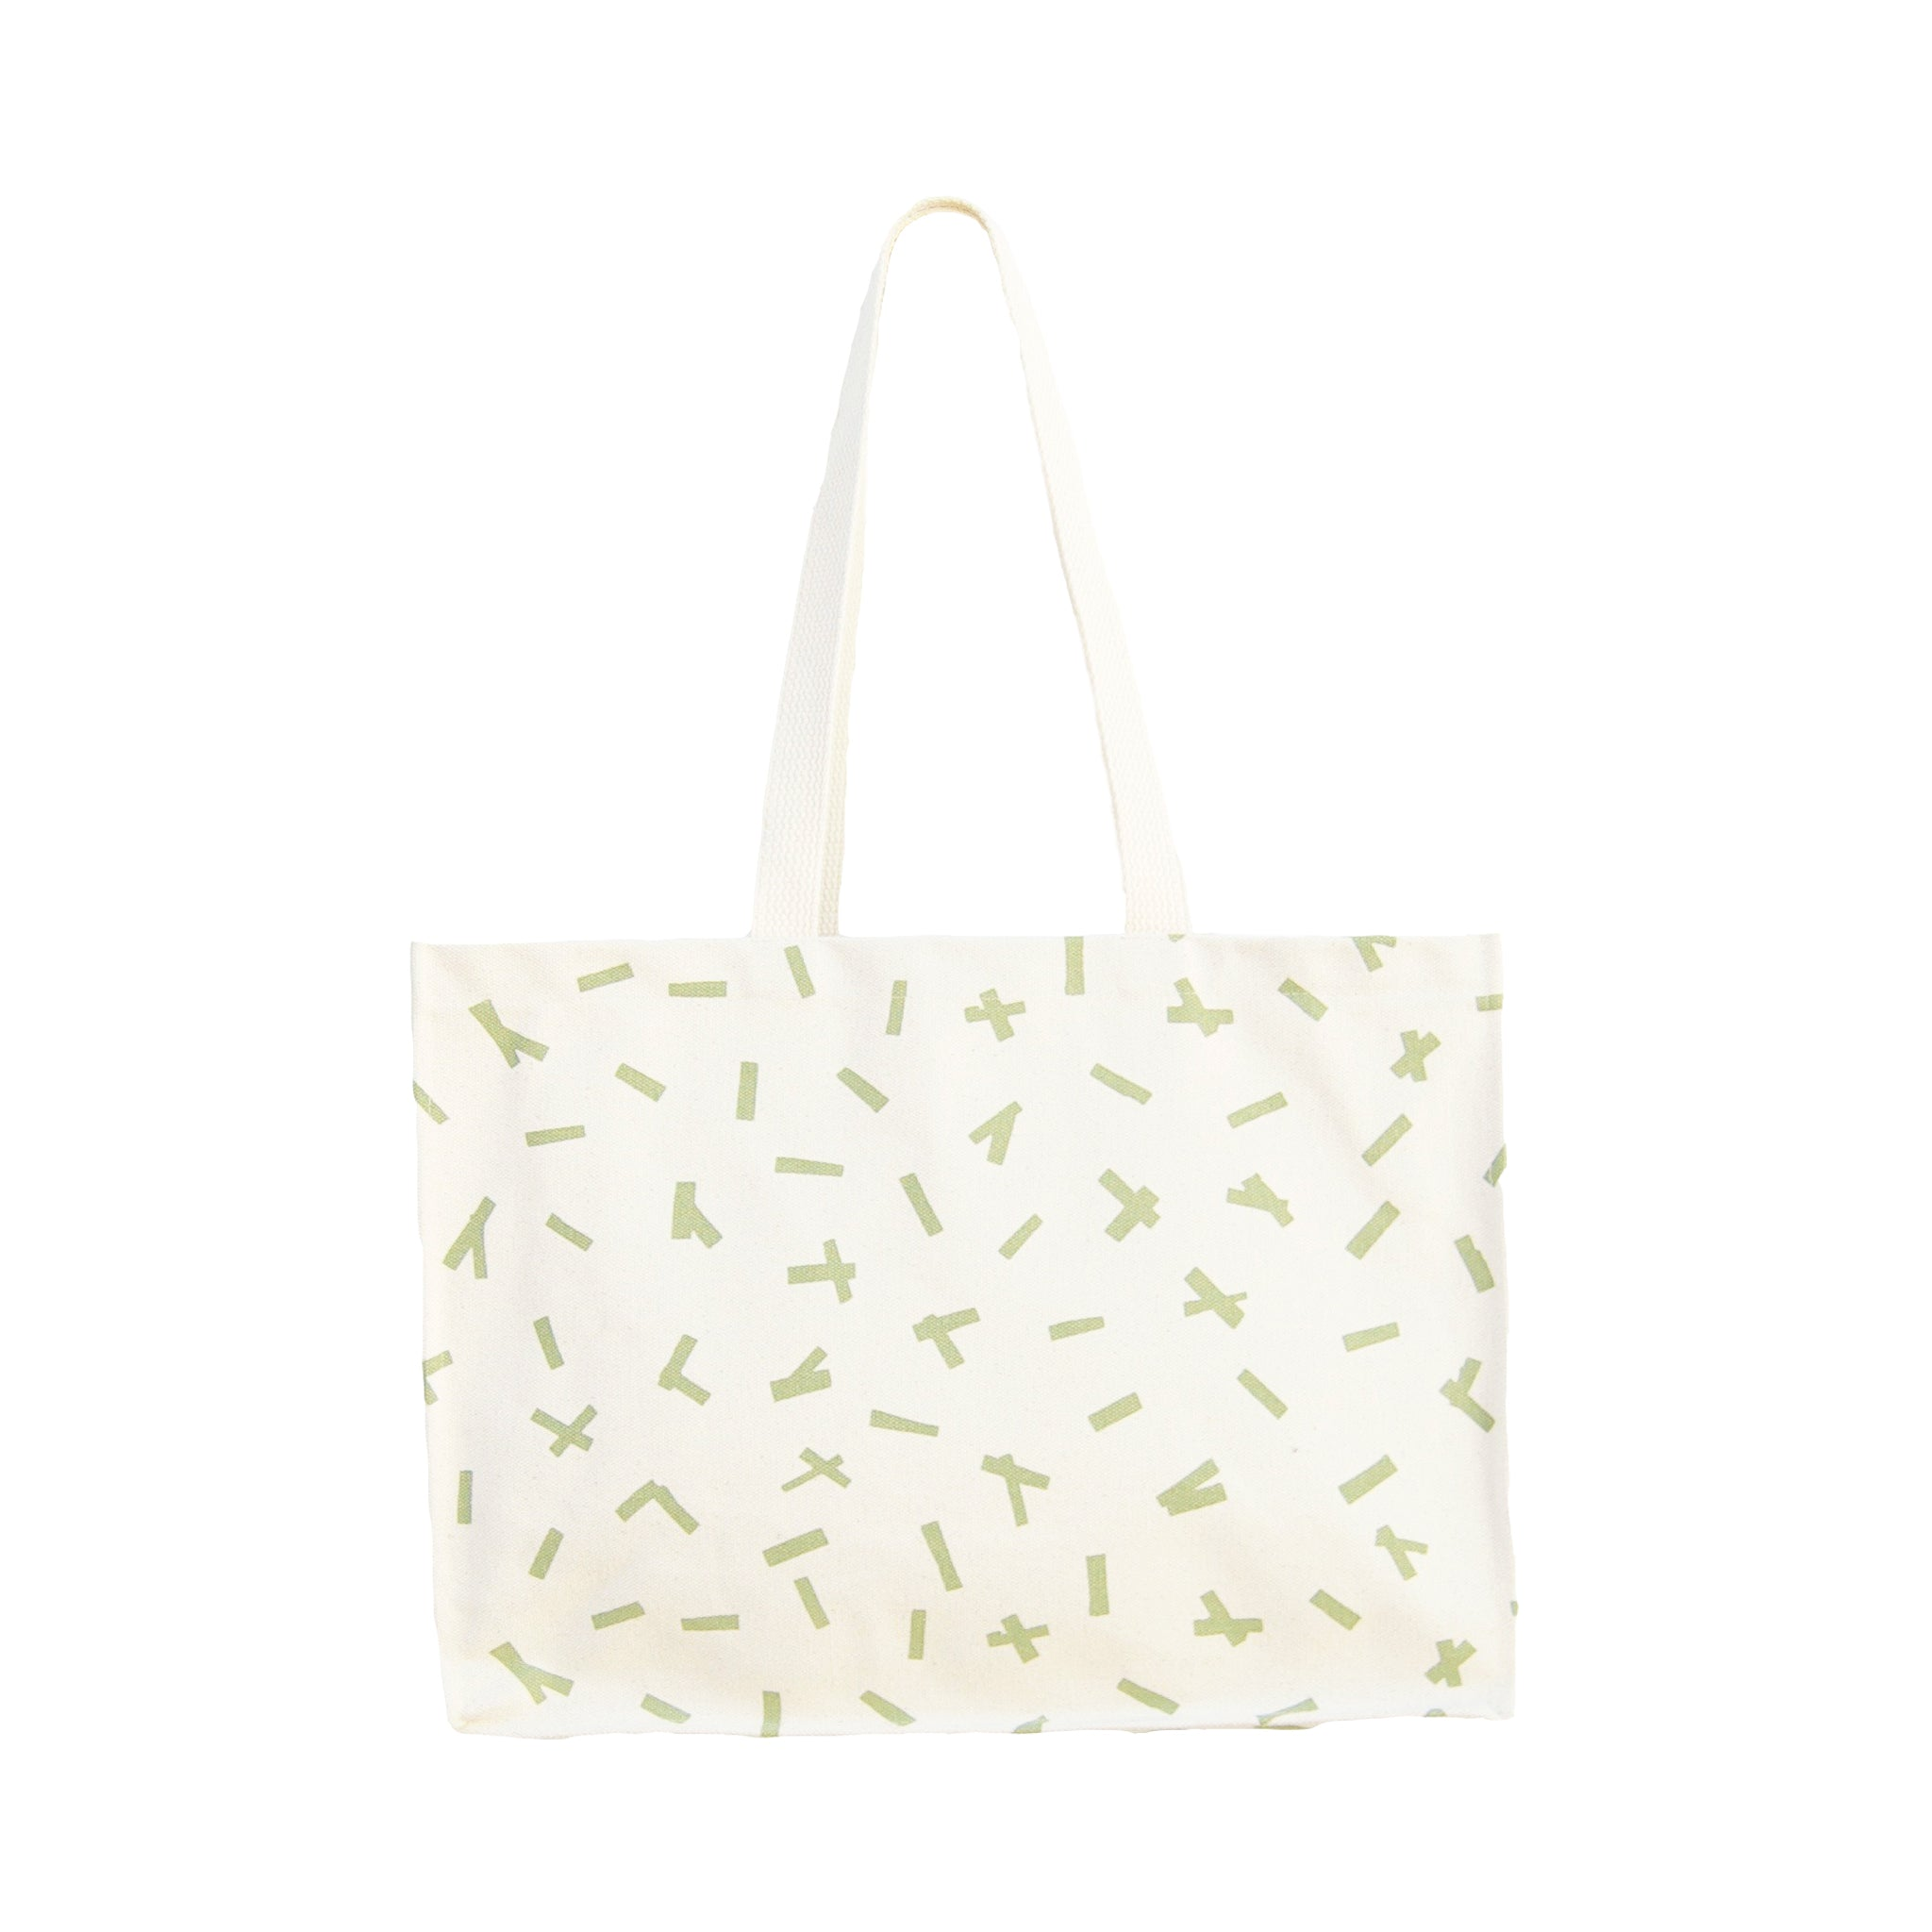 Scattered Shopper Tote